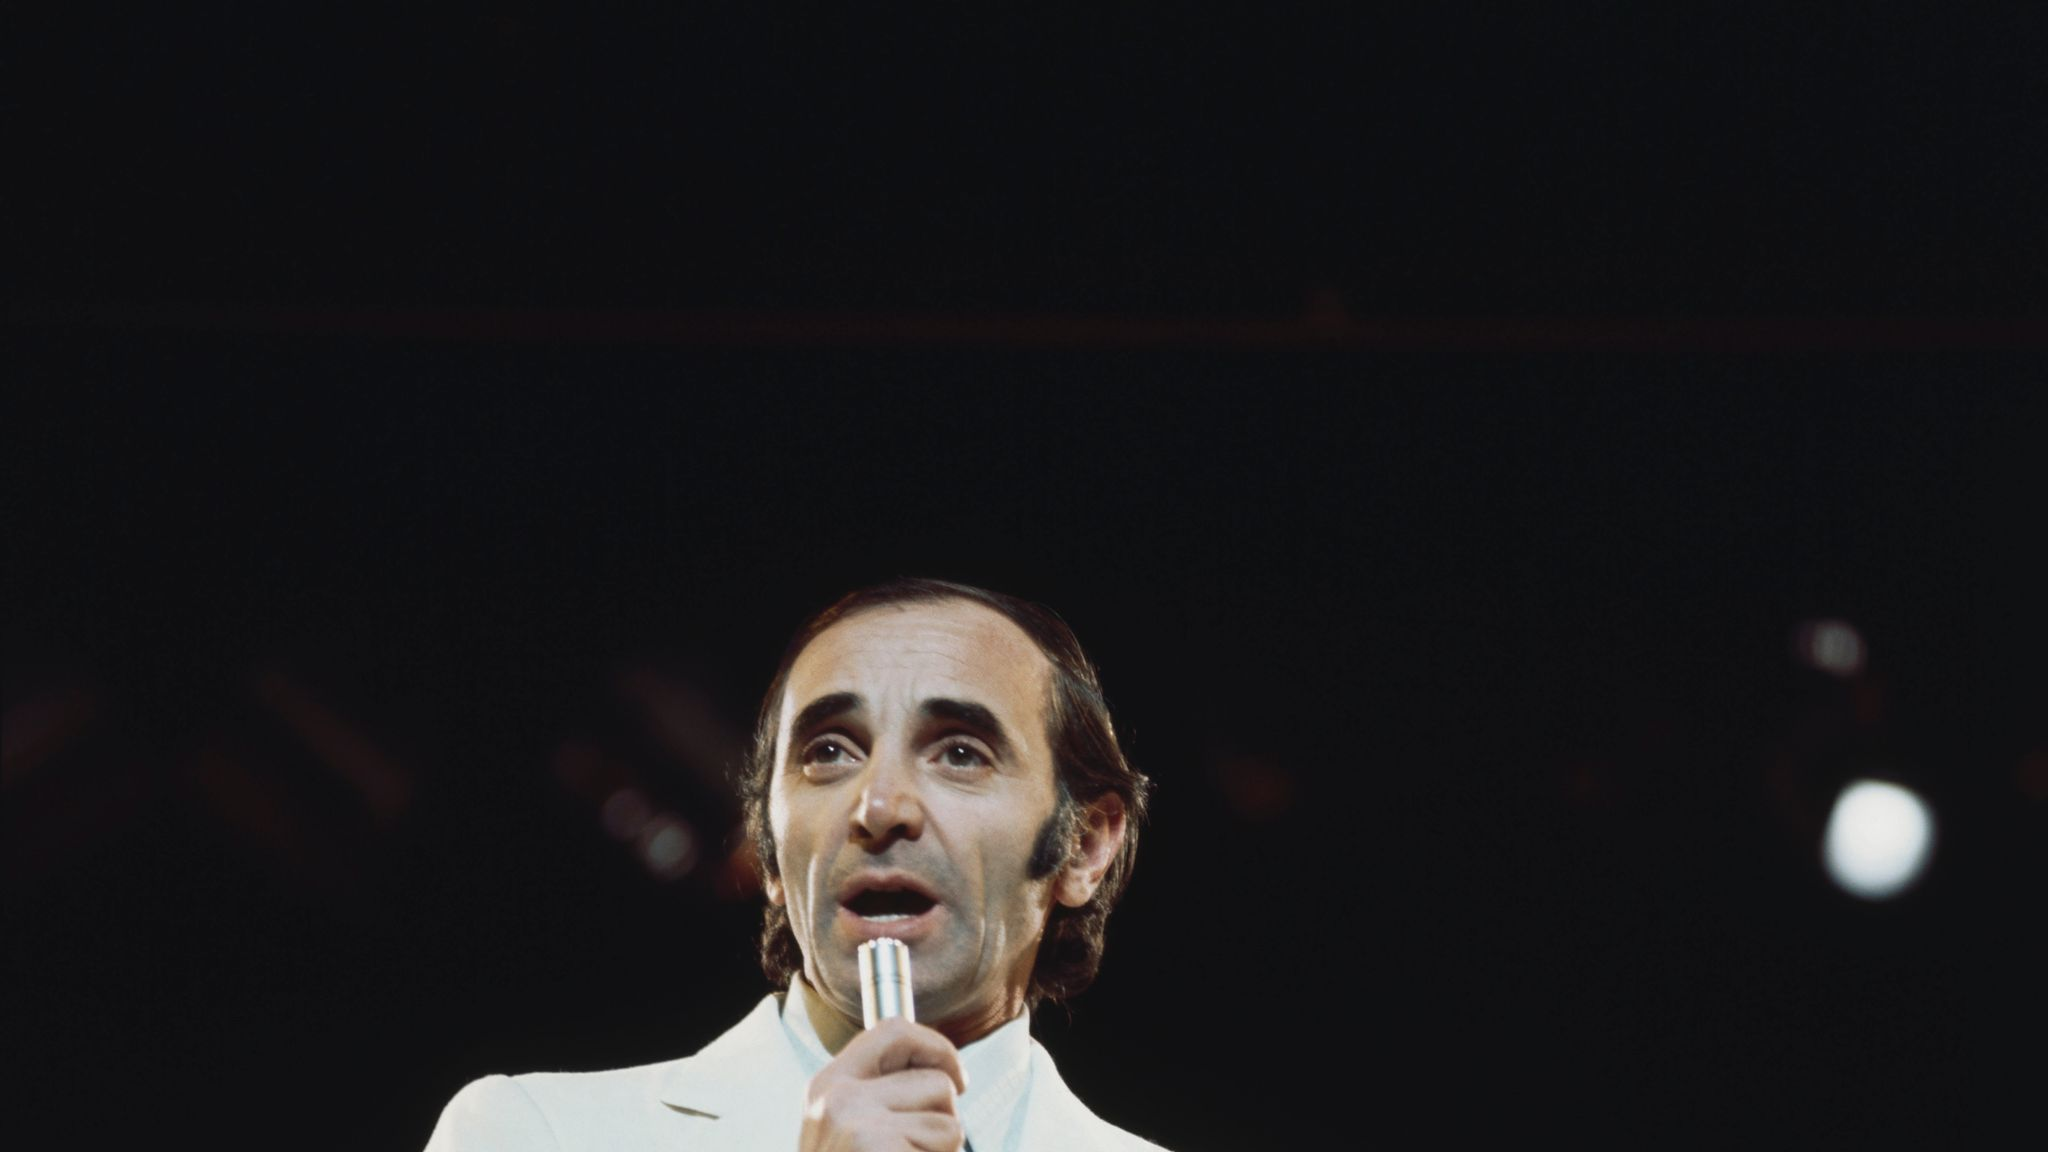 France's Frank Sinatra' Charles Aznavour dies aged 94 | Ents